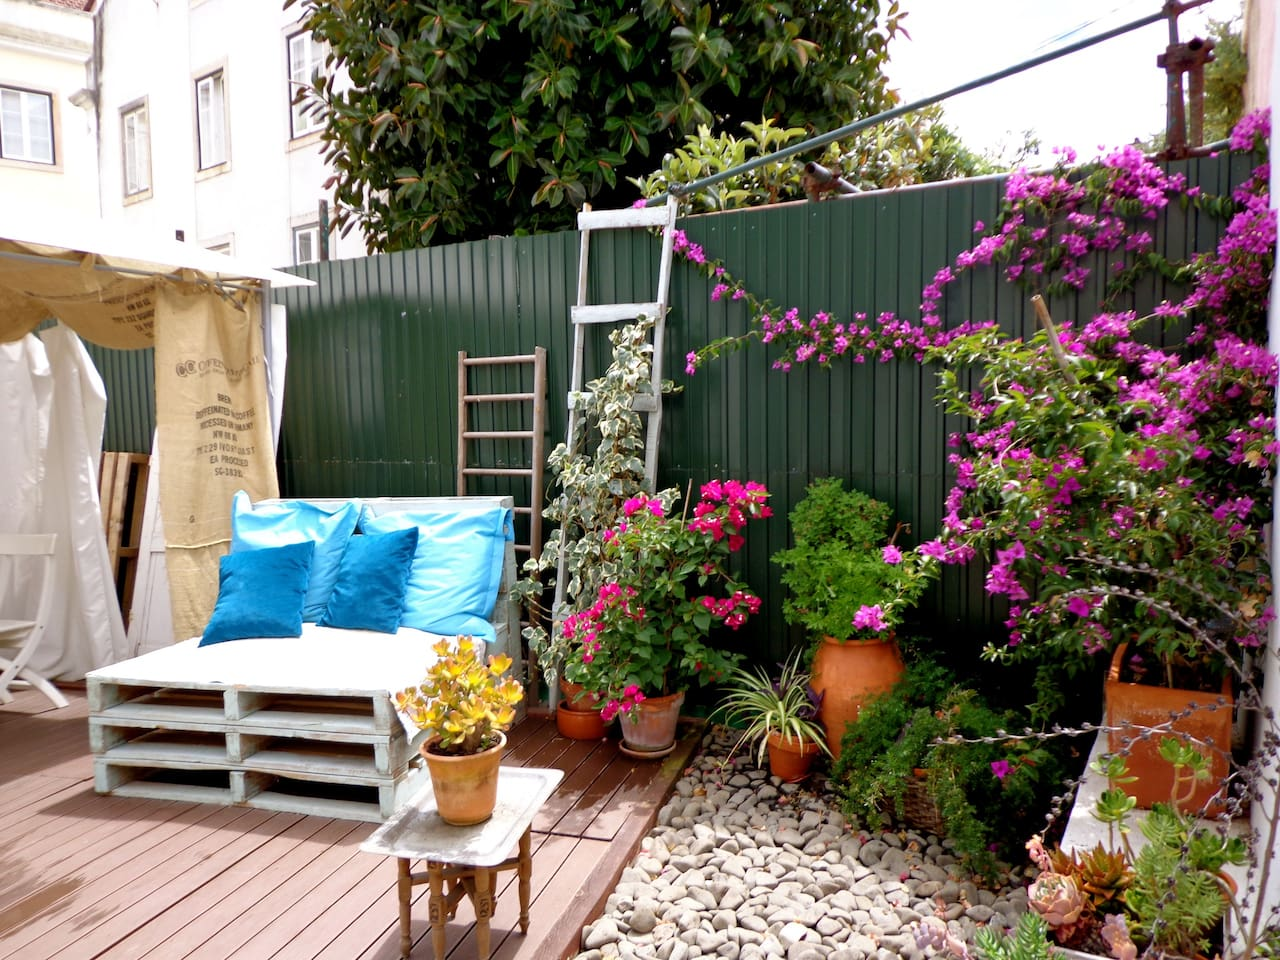 alfama loft studio 29m2 roof garden with a view apartments for